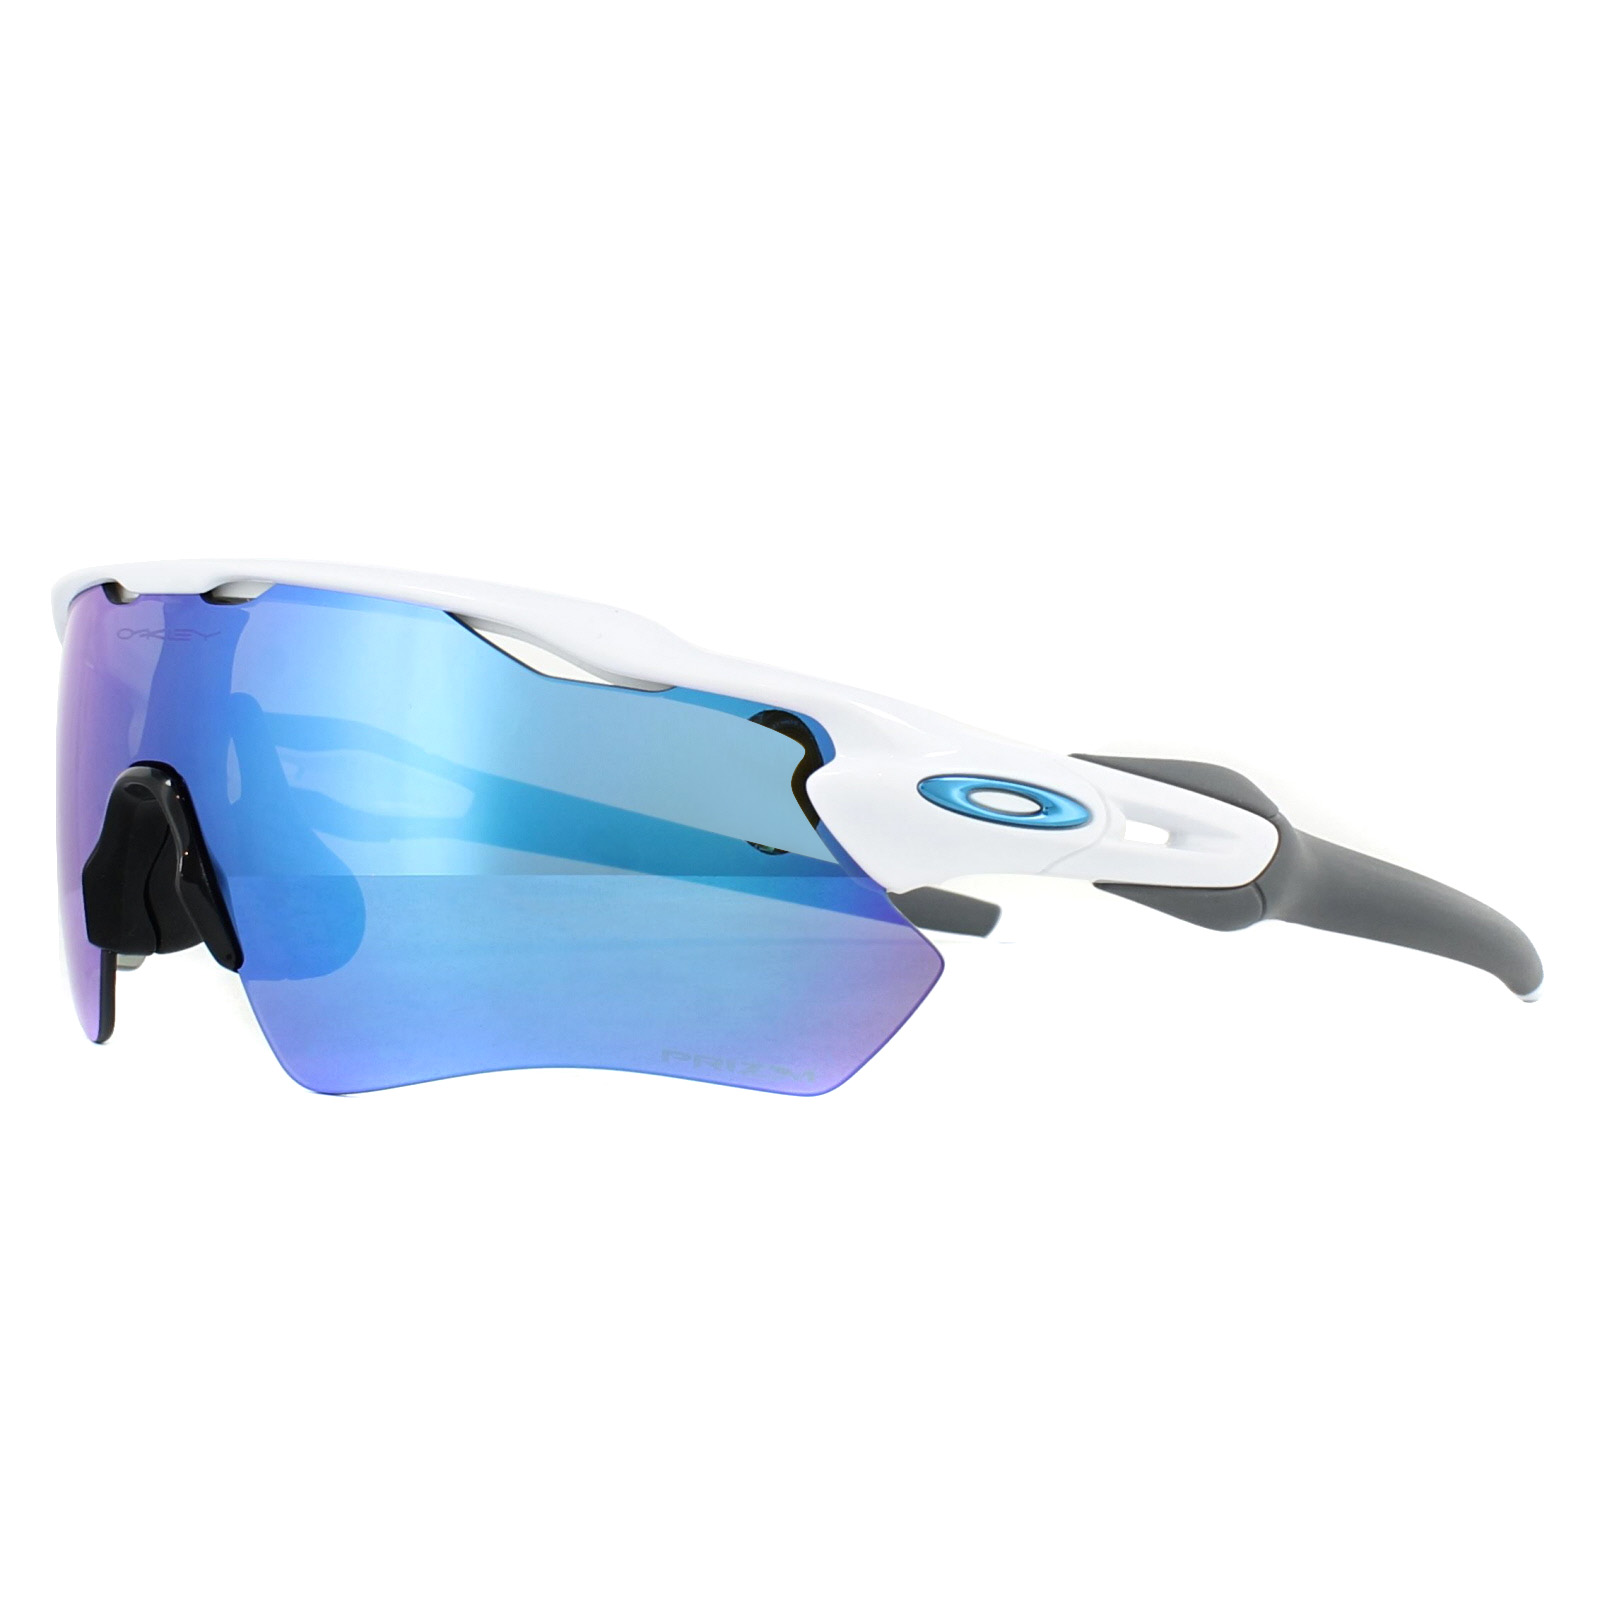 94b4b8b353 Oakley Sunglasses Radar EV Path OO9208-73 Polished White Prizm ...